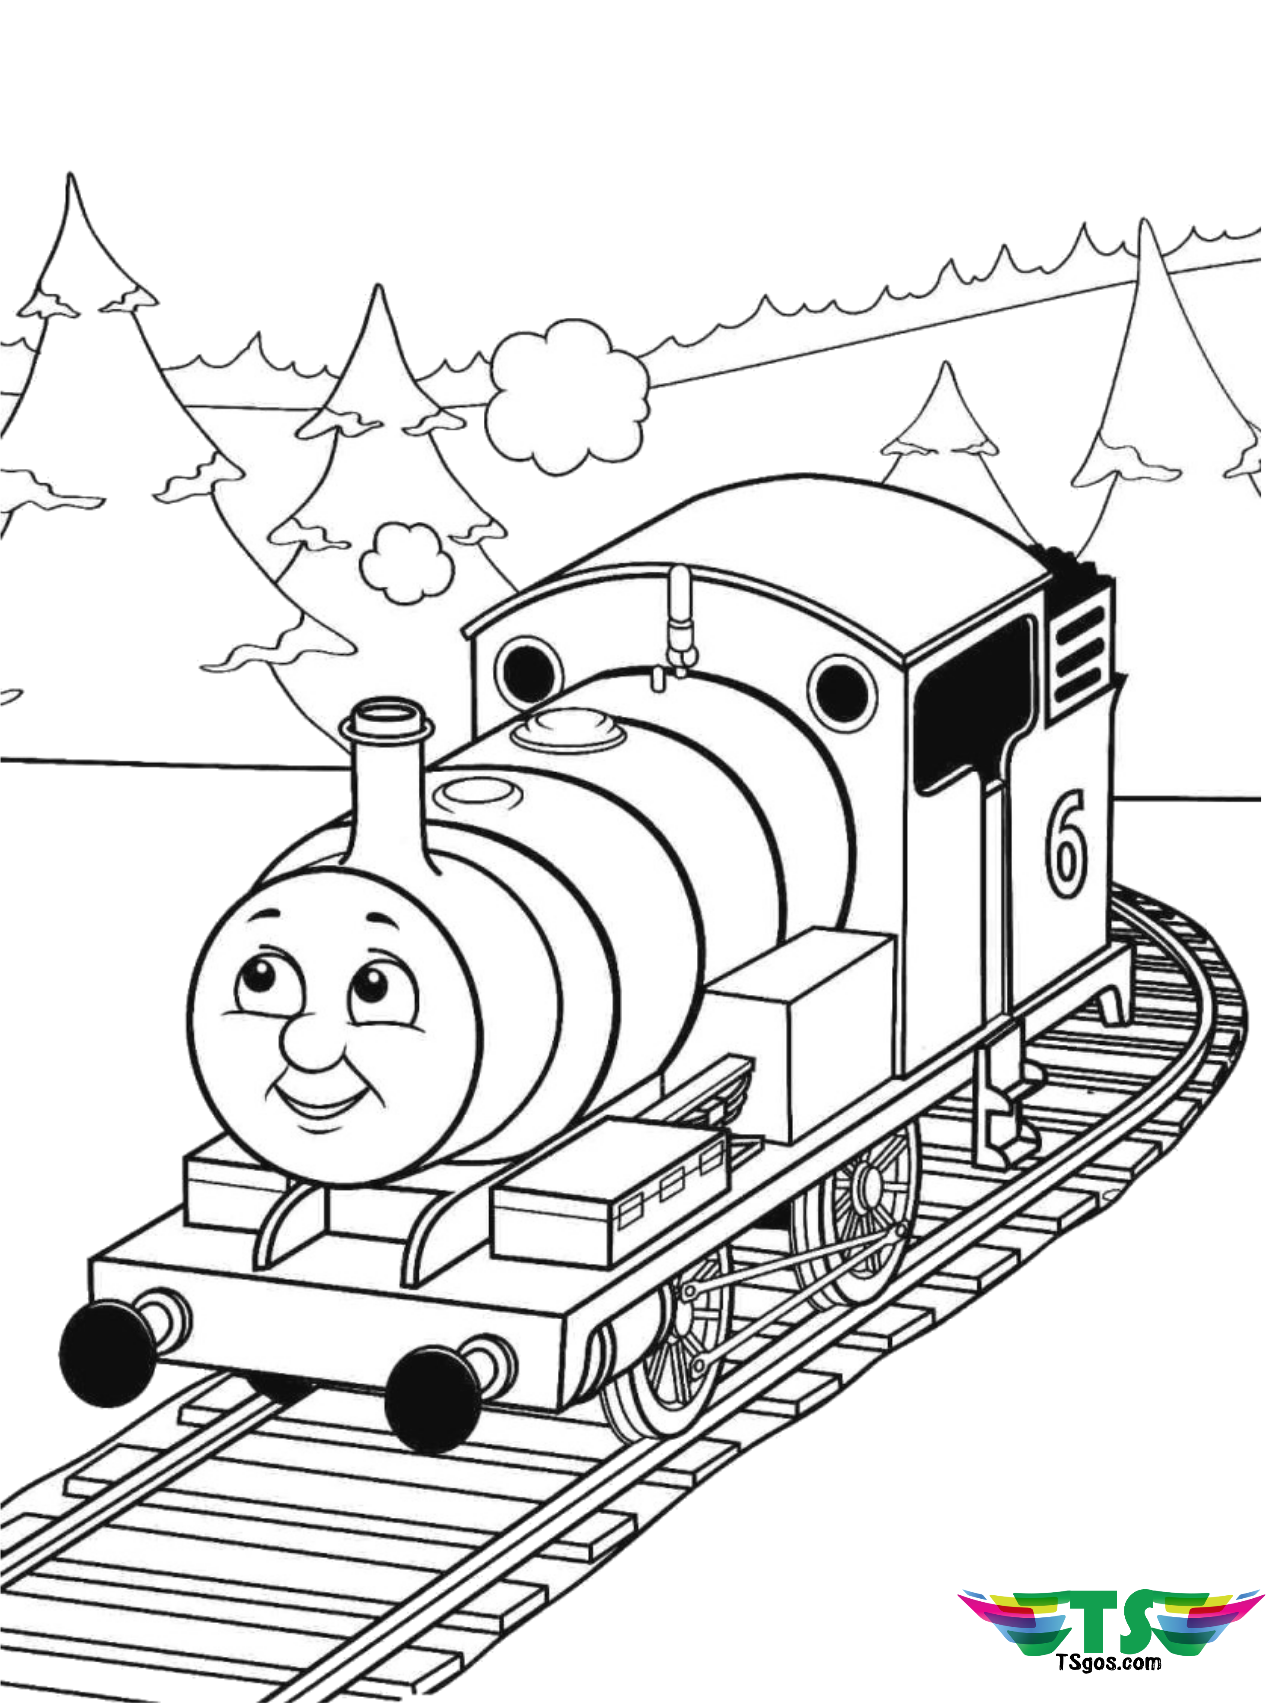 coloring train drawing pictures for kids free printable train coloring pages for kids cool2bkids drawing coloring kids pictures for train